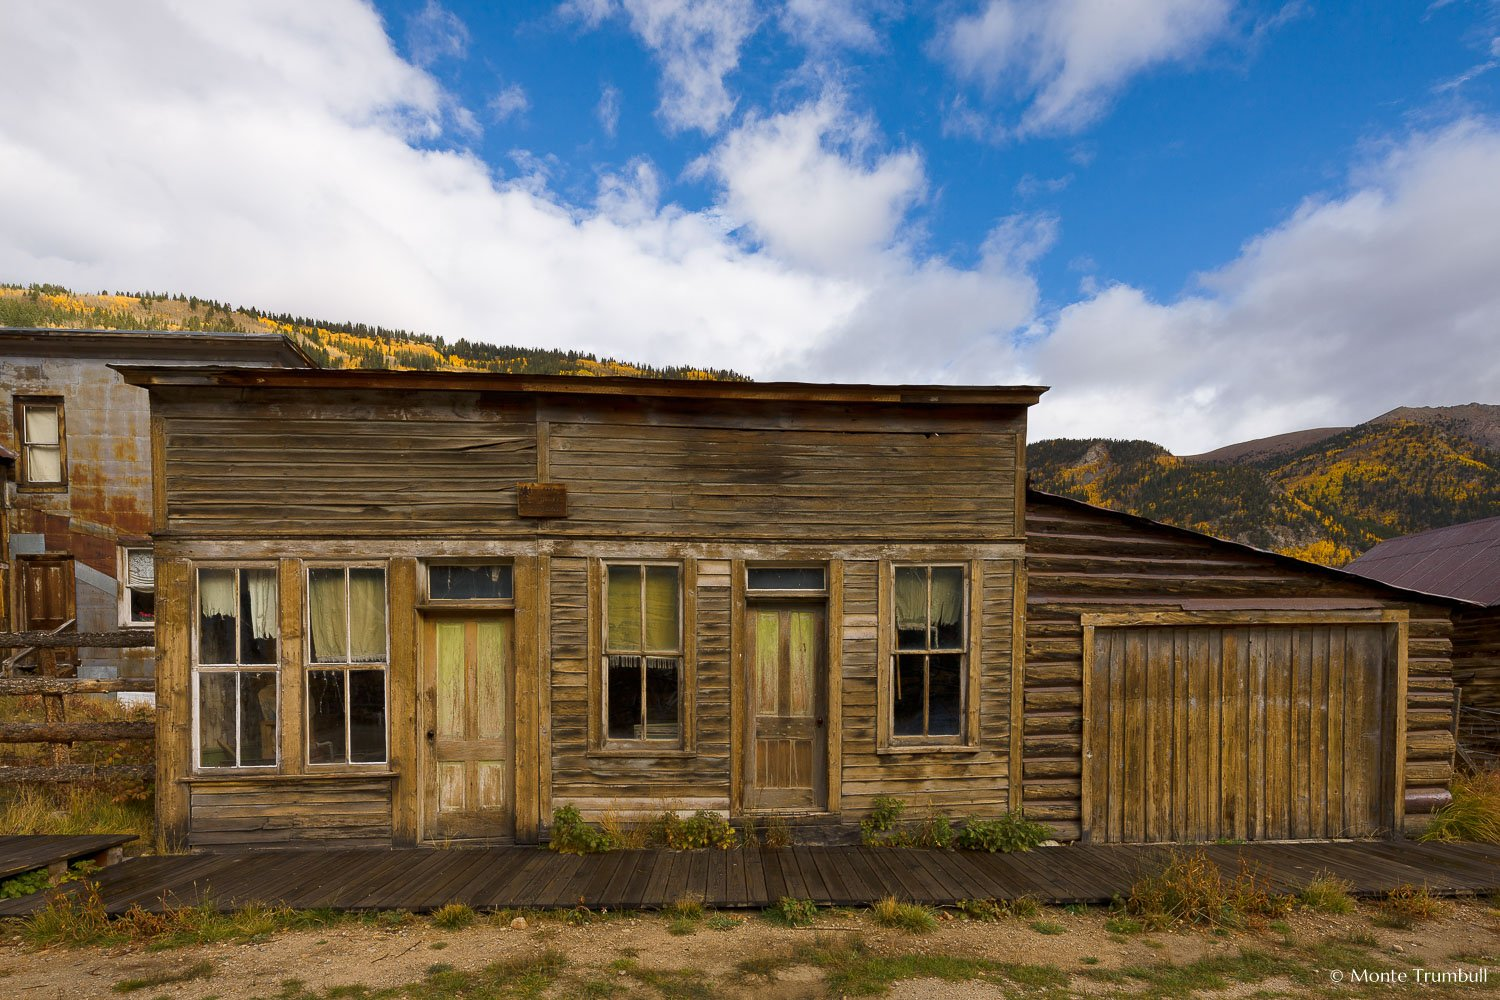 MT-20111004-092401-0040-Colorado-St-Elmo-ghost-town-old-building-fall.jpg